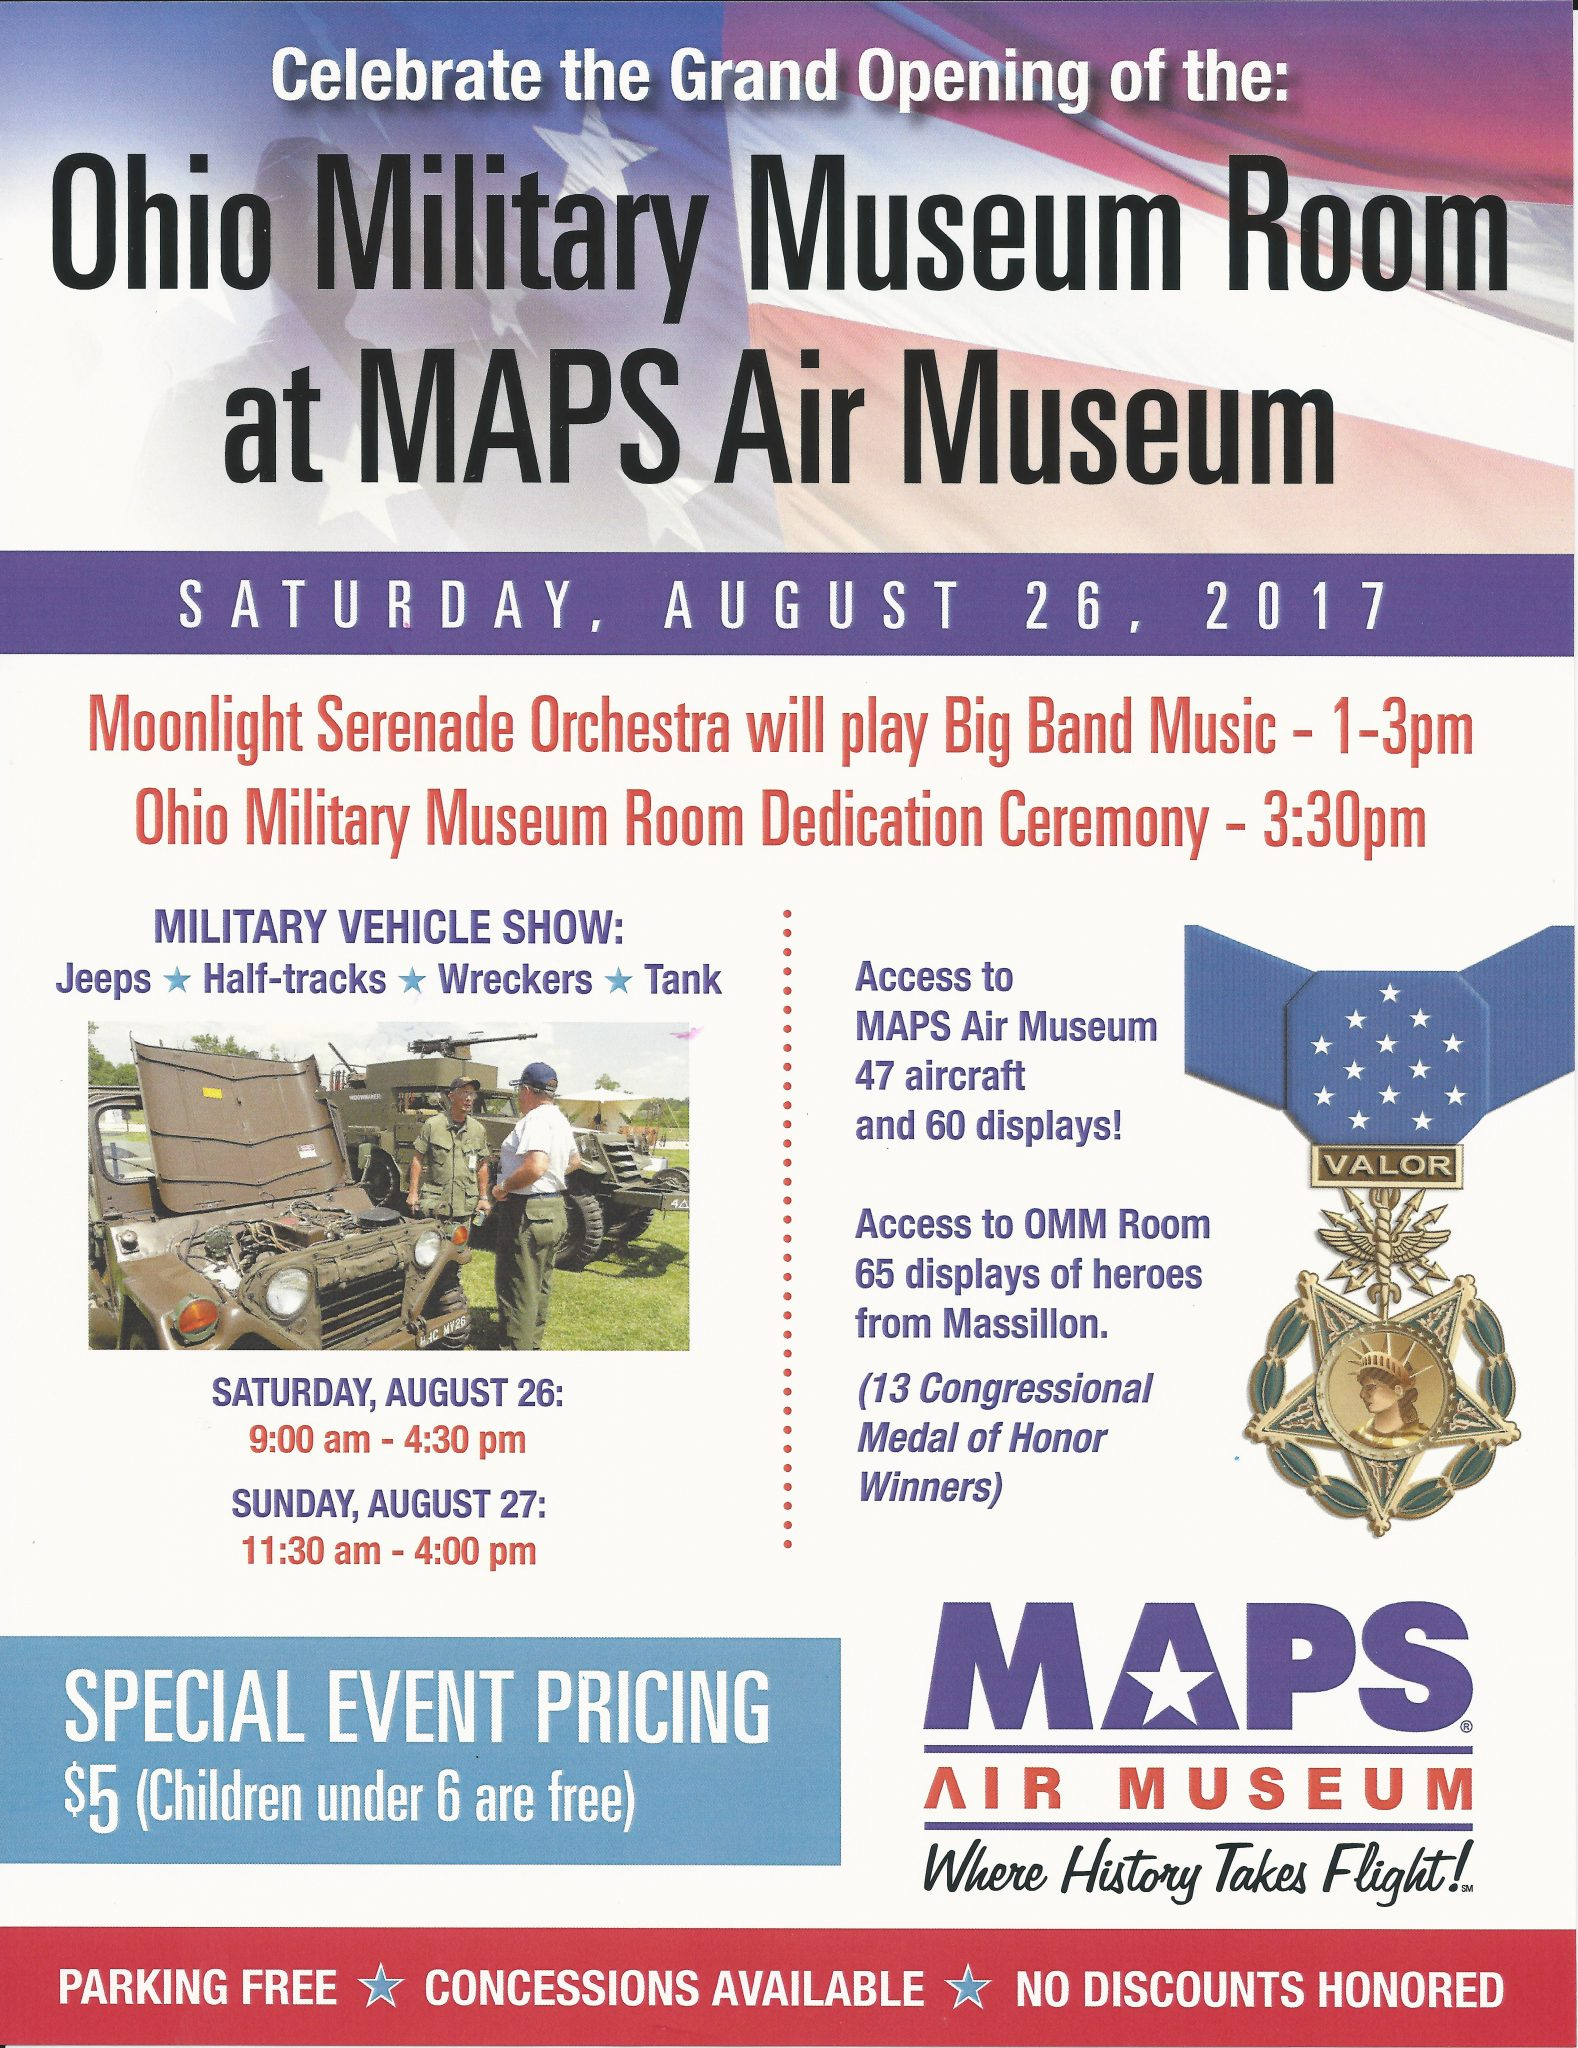 Maps Air Museum Will Host A Very Special Event In Honor Of The Grand Opening Of The Ohio Military Museum Room The Room Is Located On The Second Floor Of